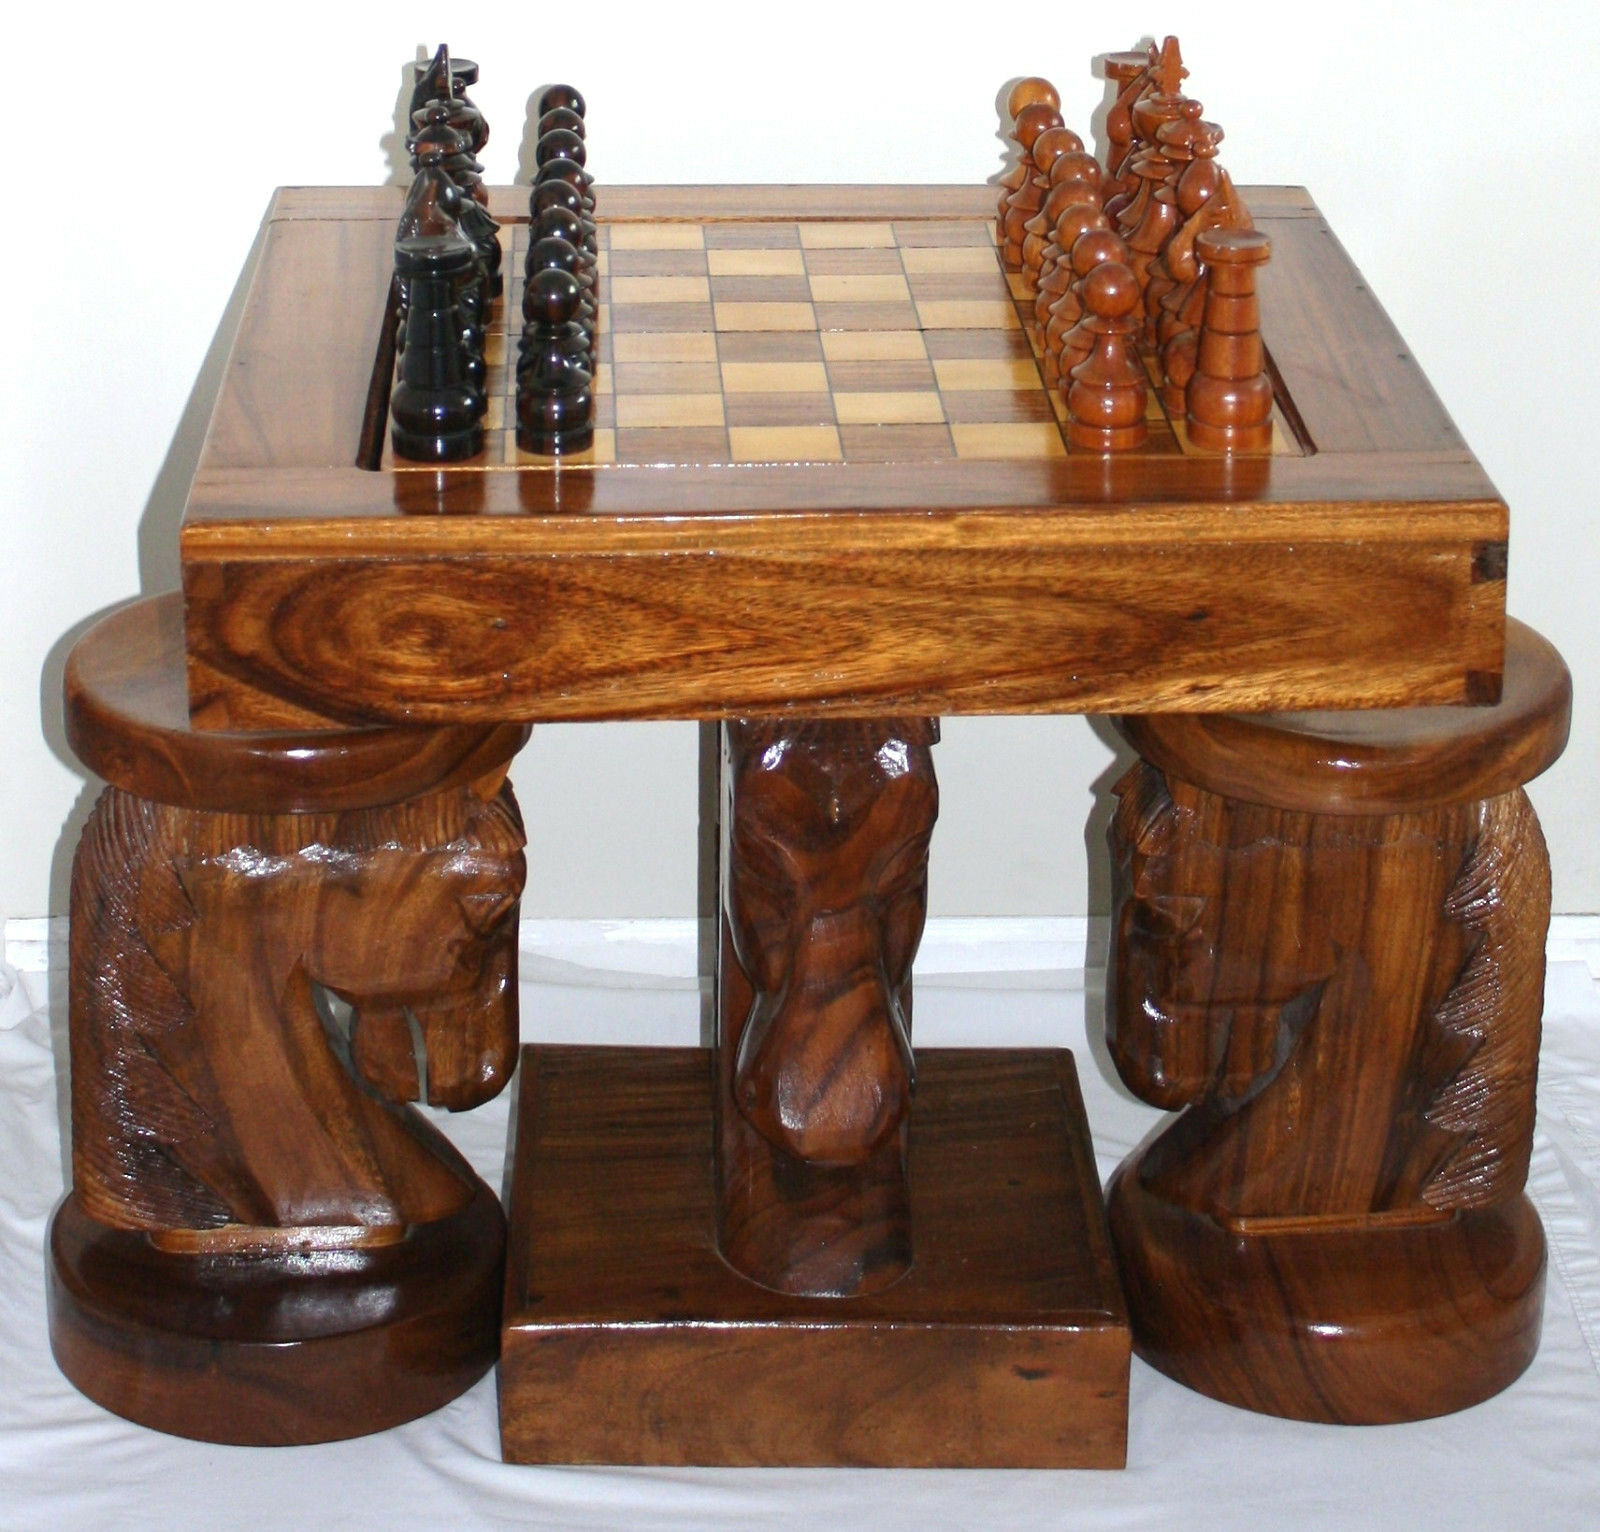 Charmant Unique Handcrafted Hand Carved Horse Head Chess/Backgammon Table With Chairs